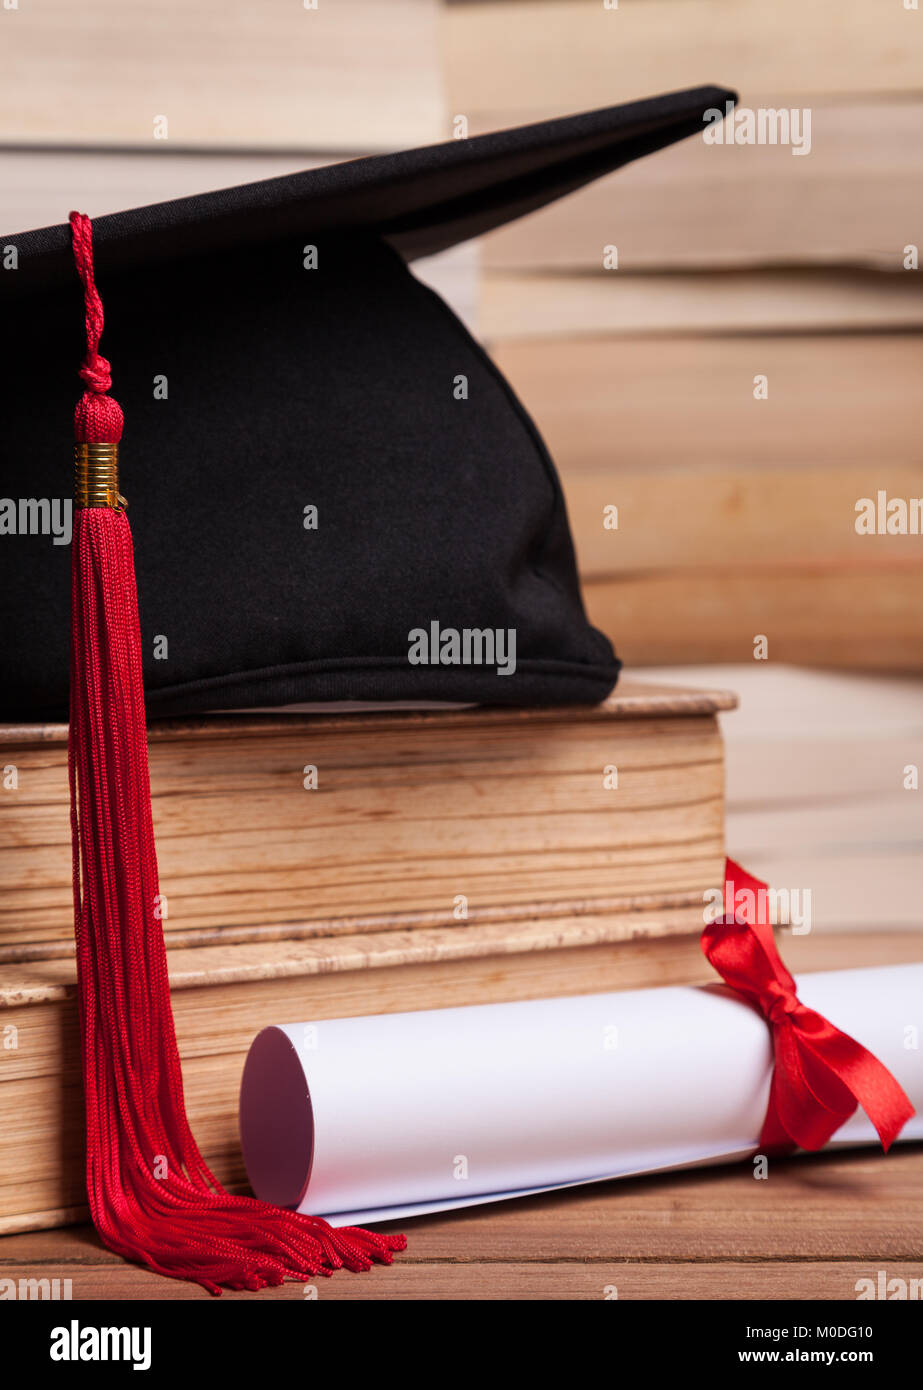 Mortarboard with red tassel, diploma, and books on a table - Stock Image